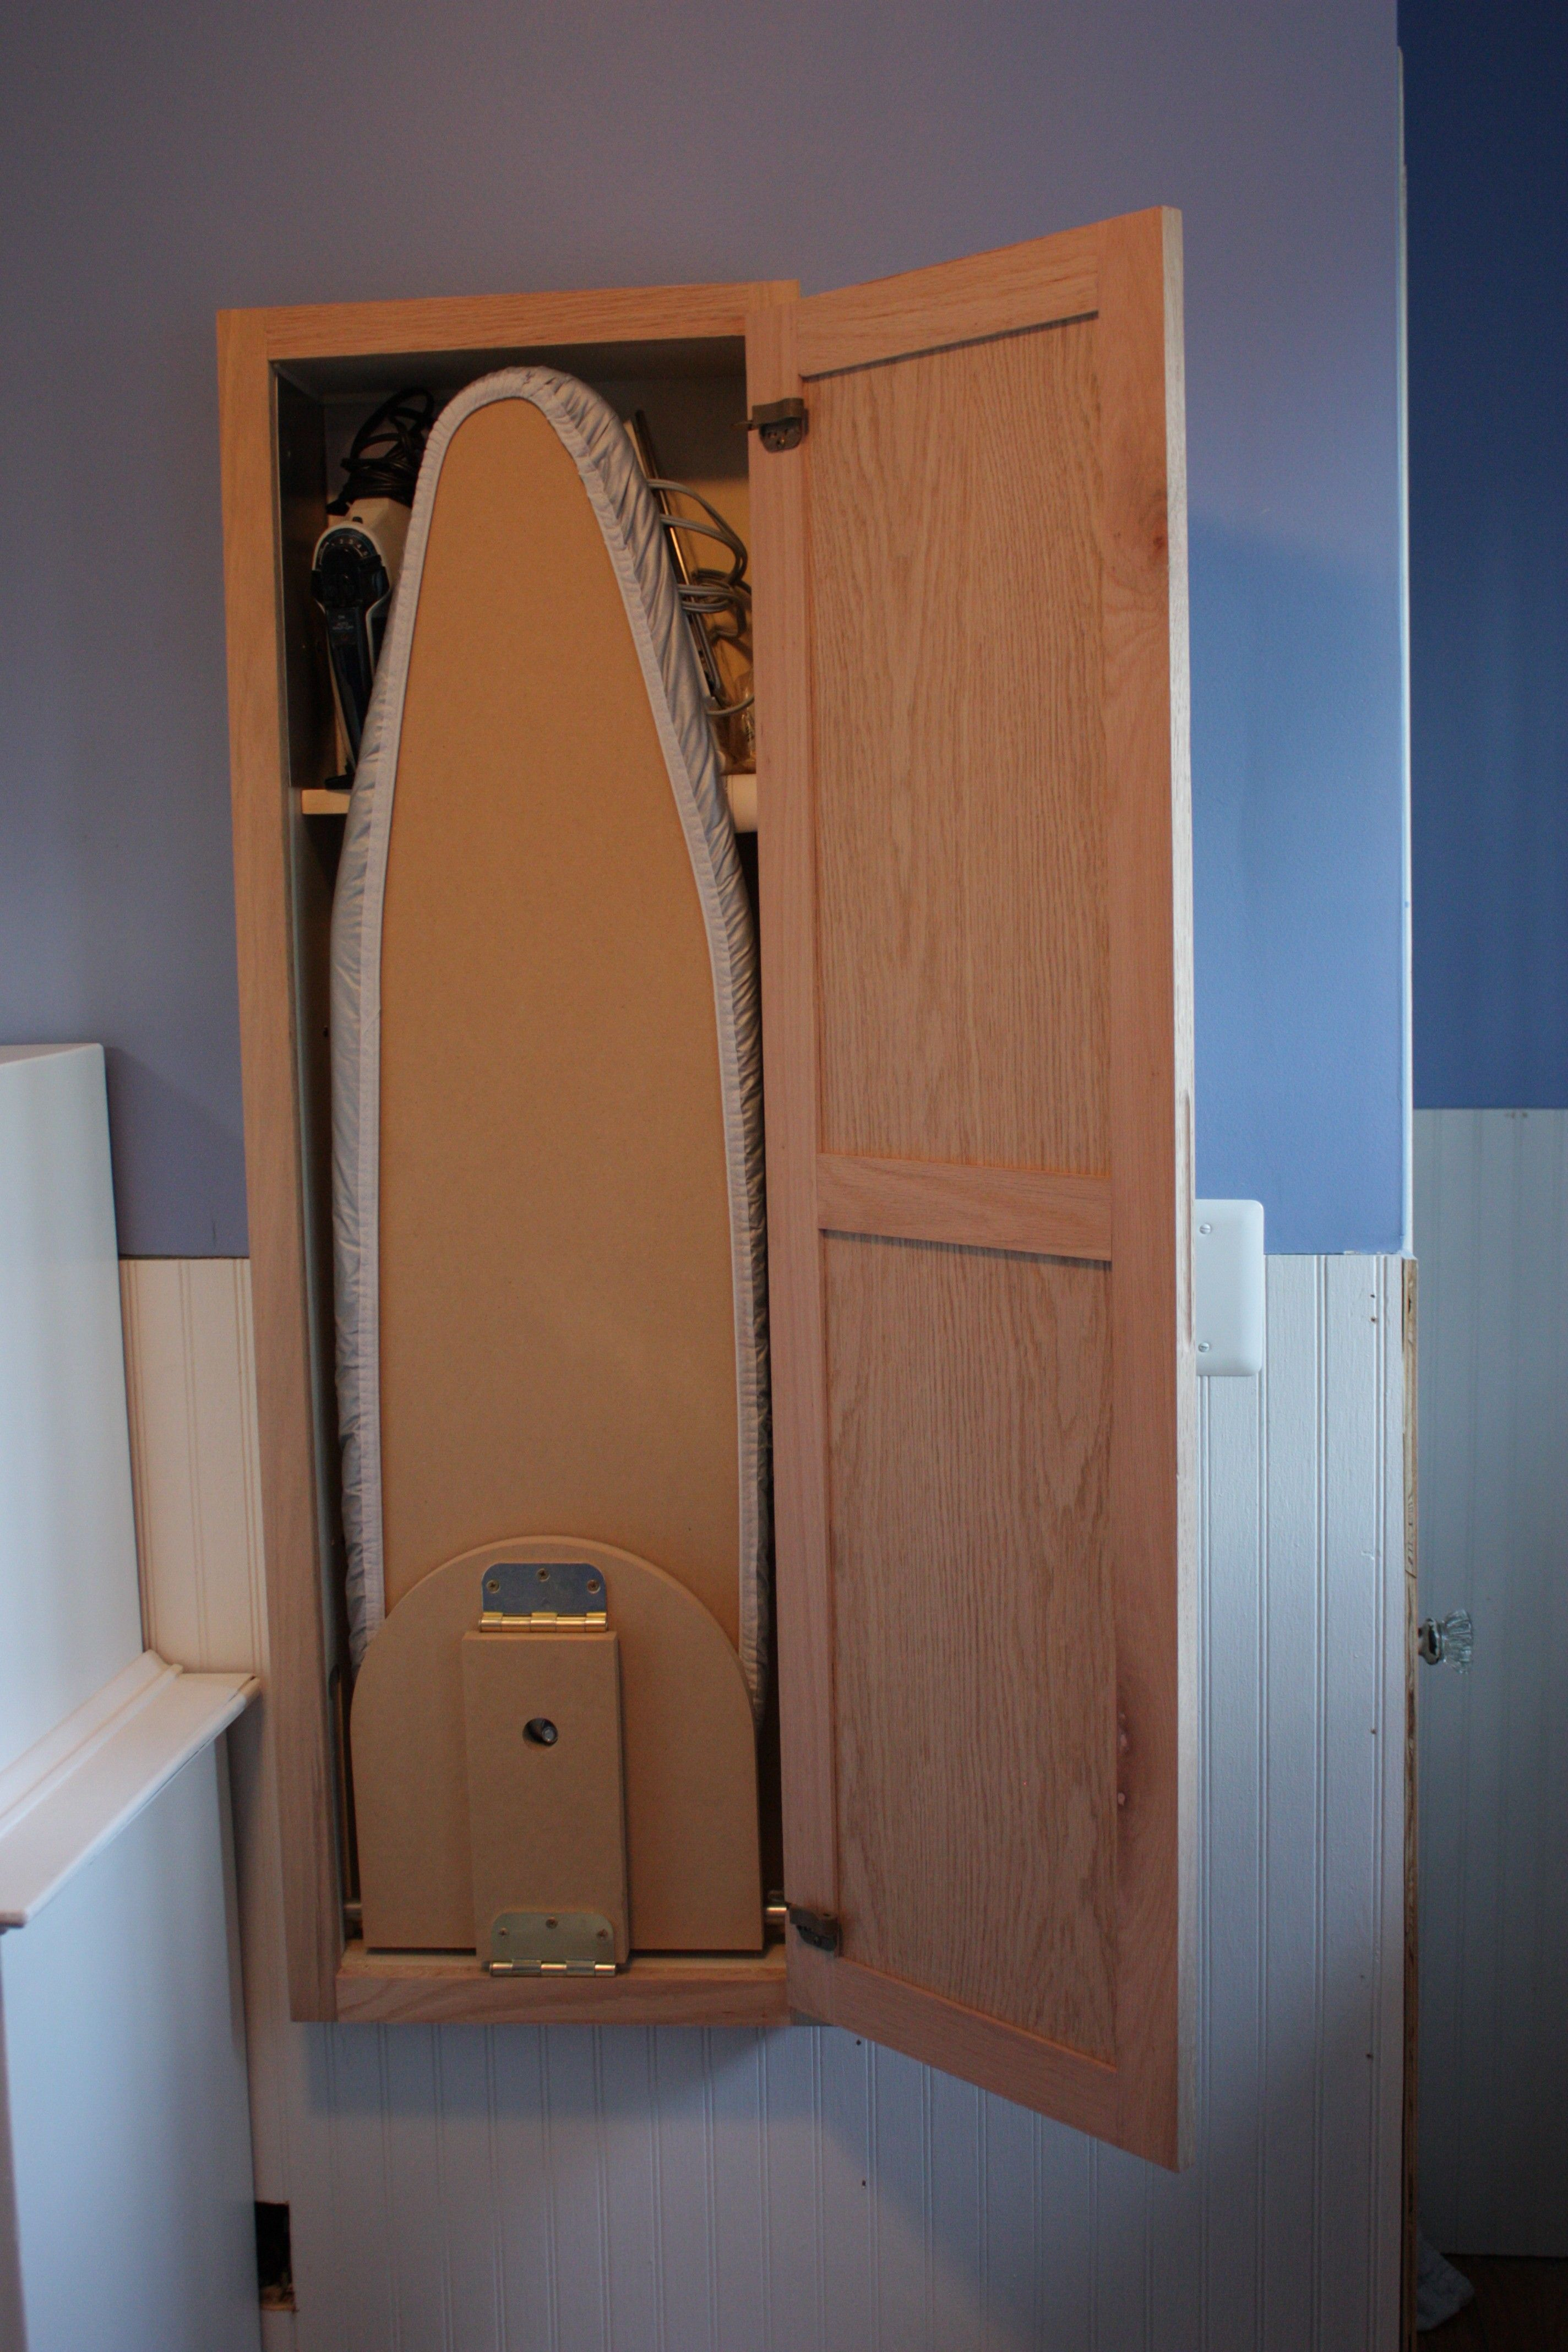 In The Wall Wall Mounted Ironing Board Ironing Board Cabinet Wall Ironing Board